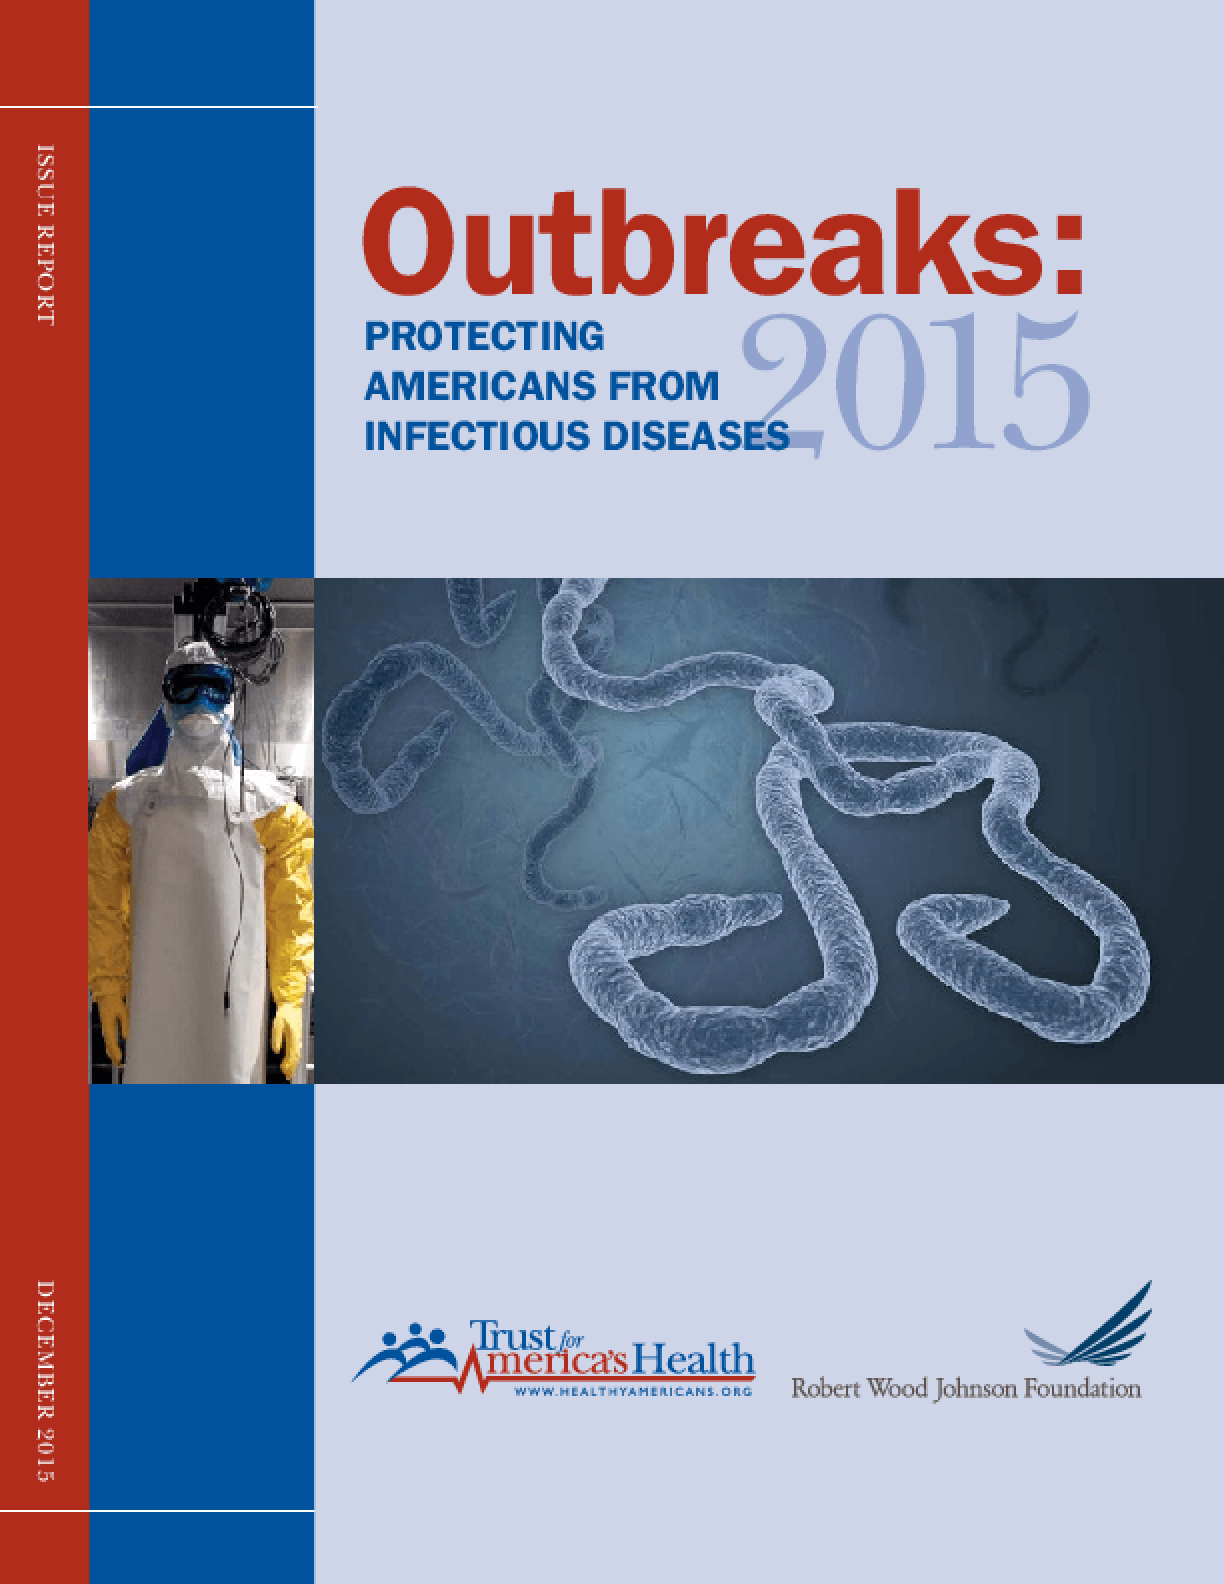 Outbreaks: Protecting Americans From Infectious Diseases 2015